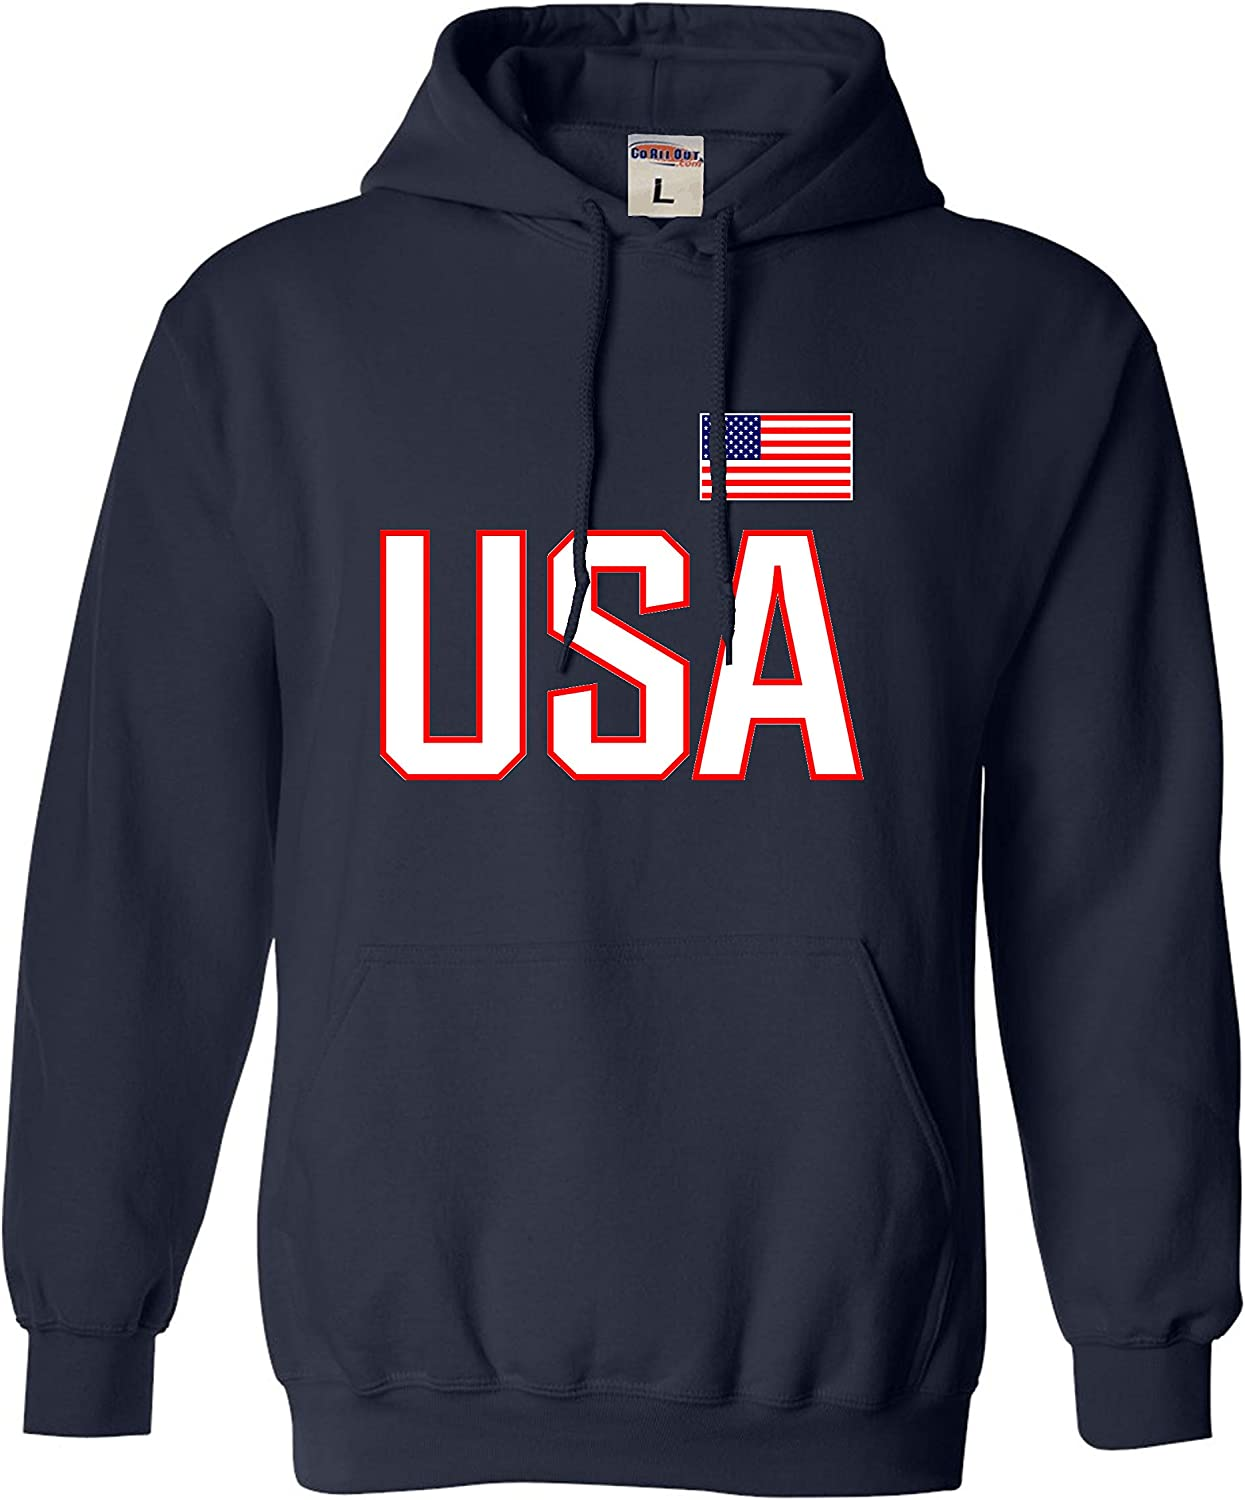 Go All Out Adult overseas USA Hoodie Pride National Super special price Sweatshirt